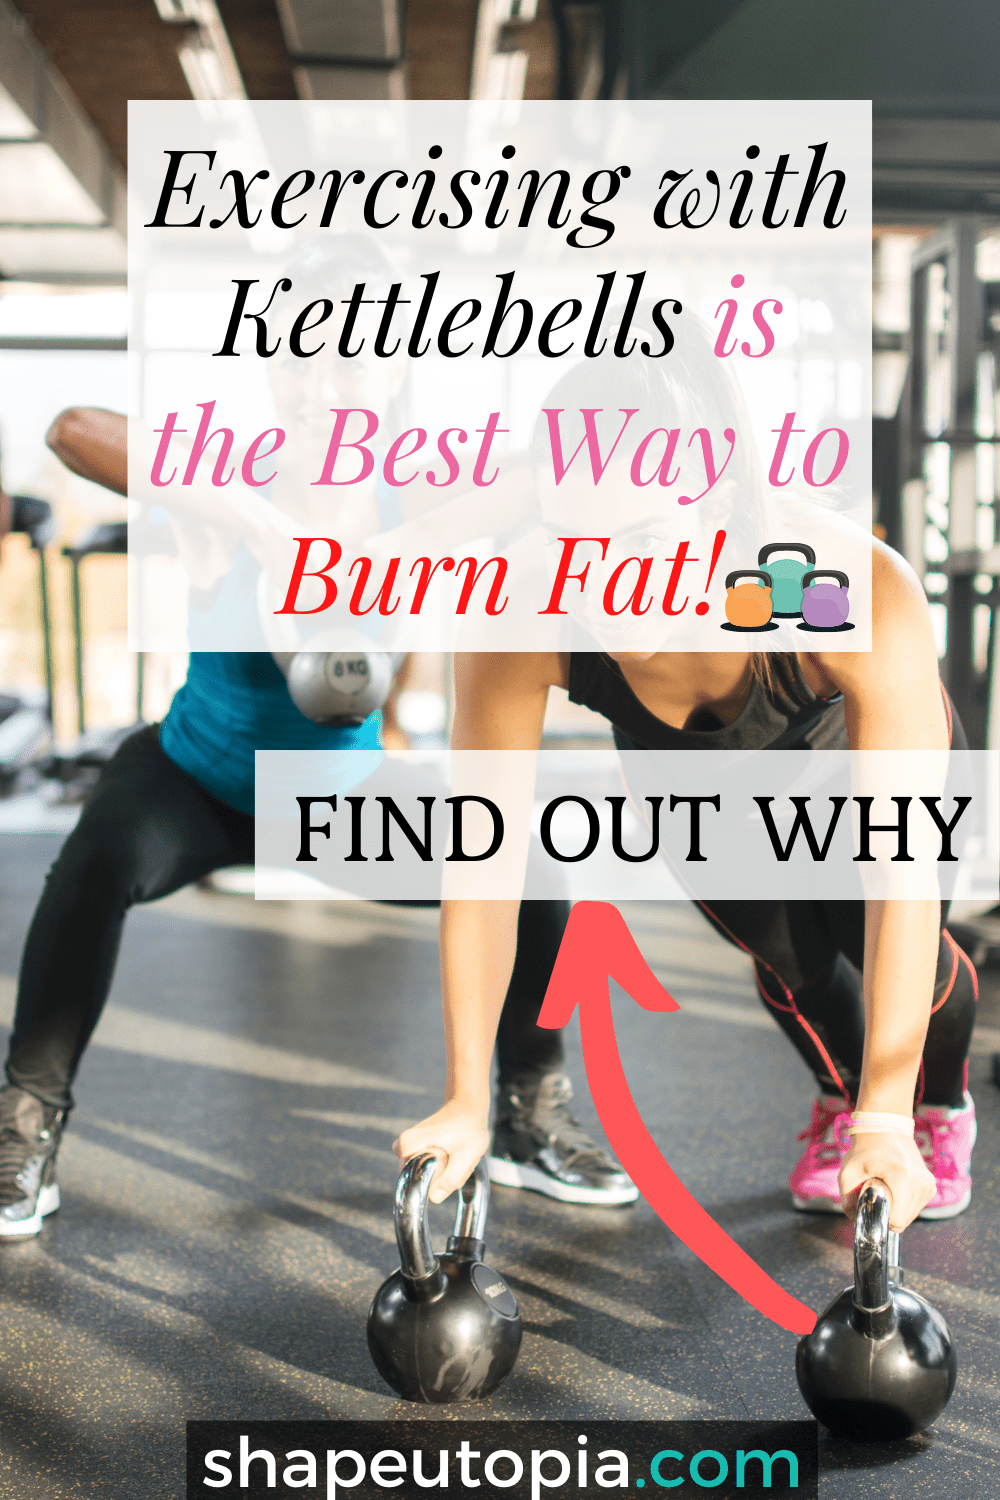 Exercising with Kettlebells is the Best Way to Burn Fat!